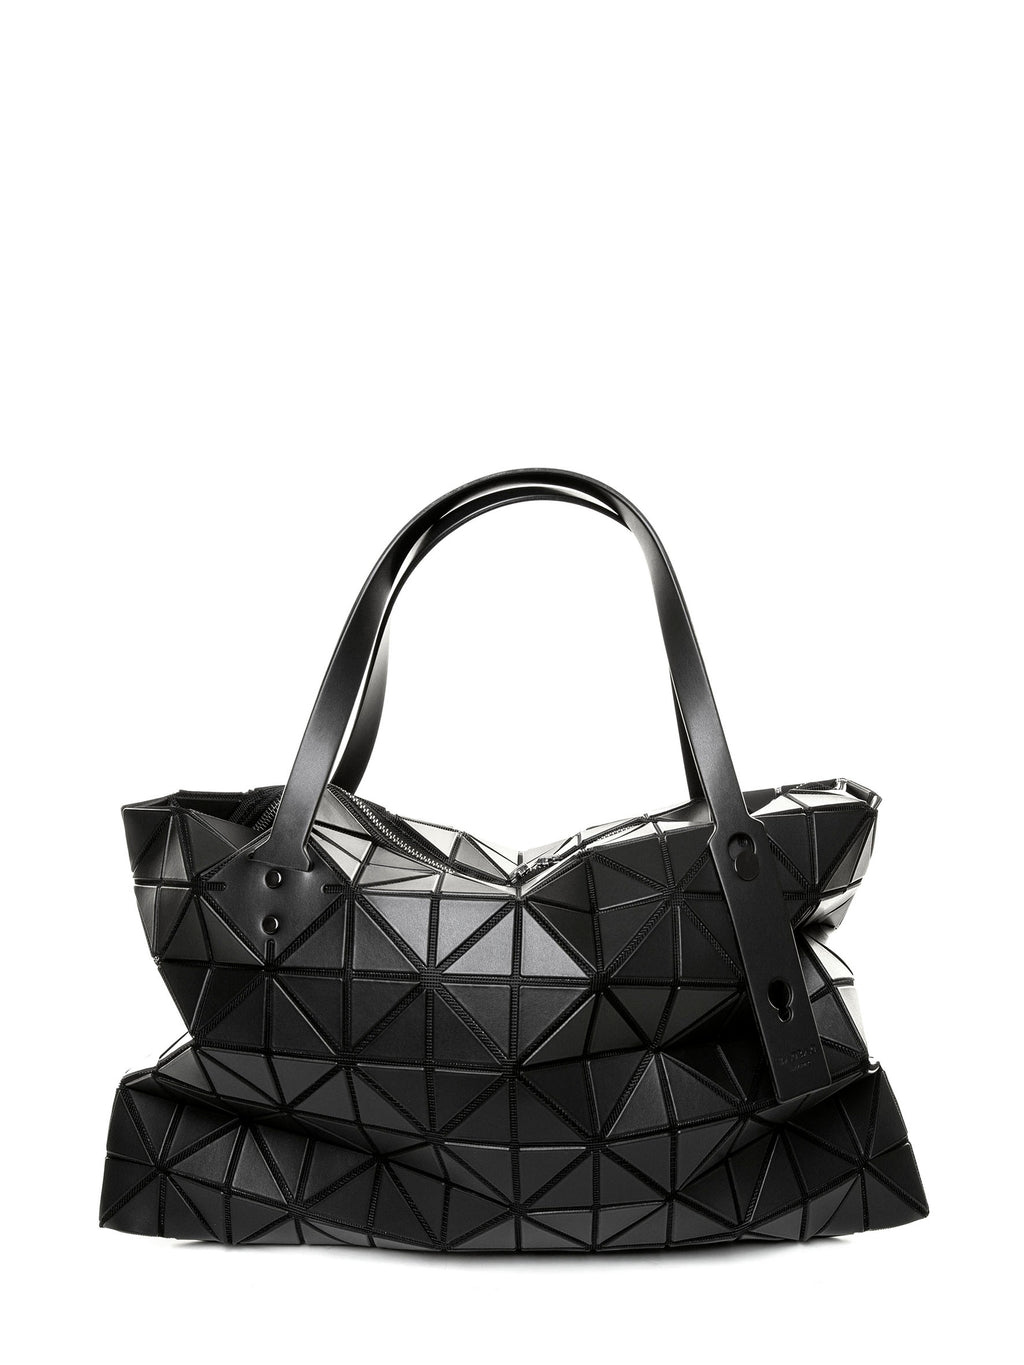 Rock Matte Shoulder Bag - Black